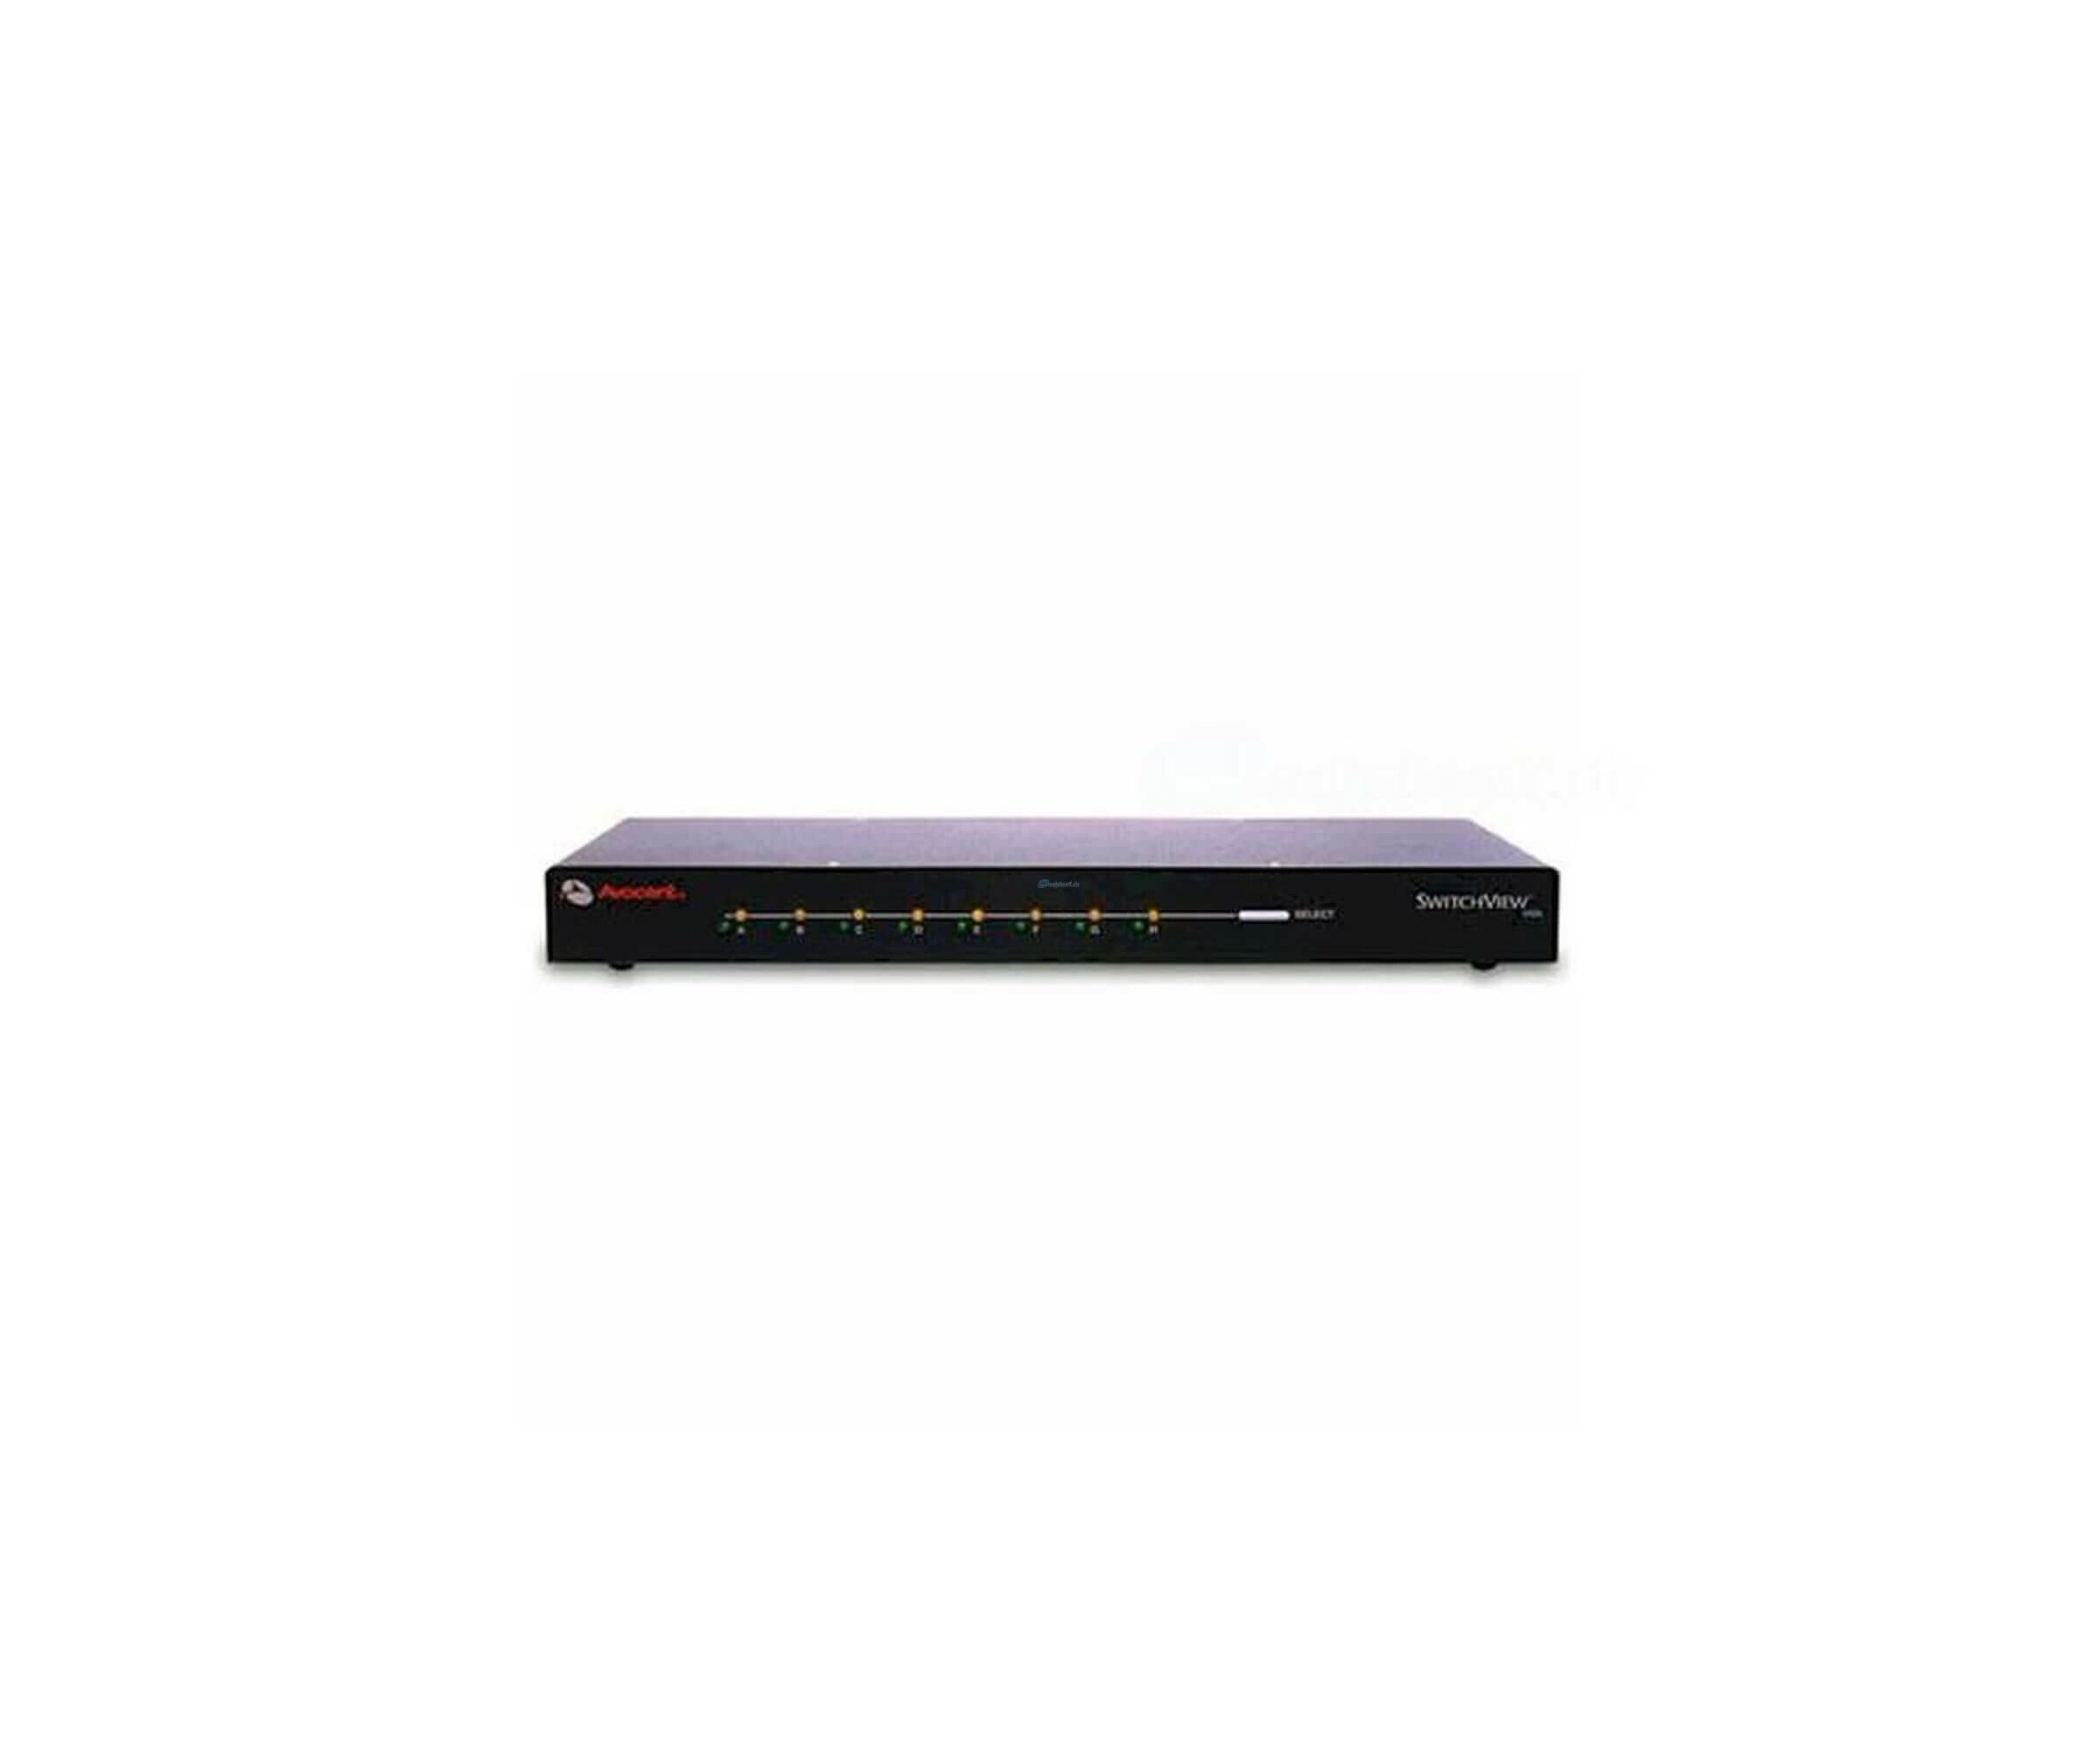 avocent-cybex-switchview-10085-osd-8-port-kvm-switch-ps-2